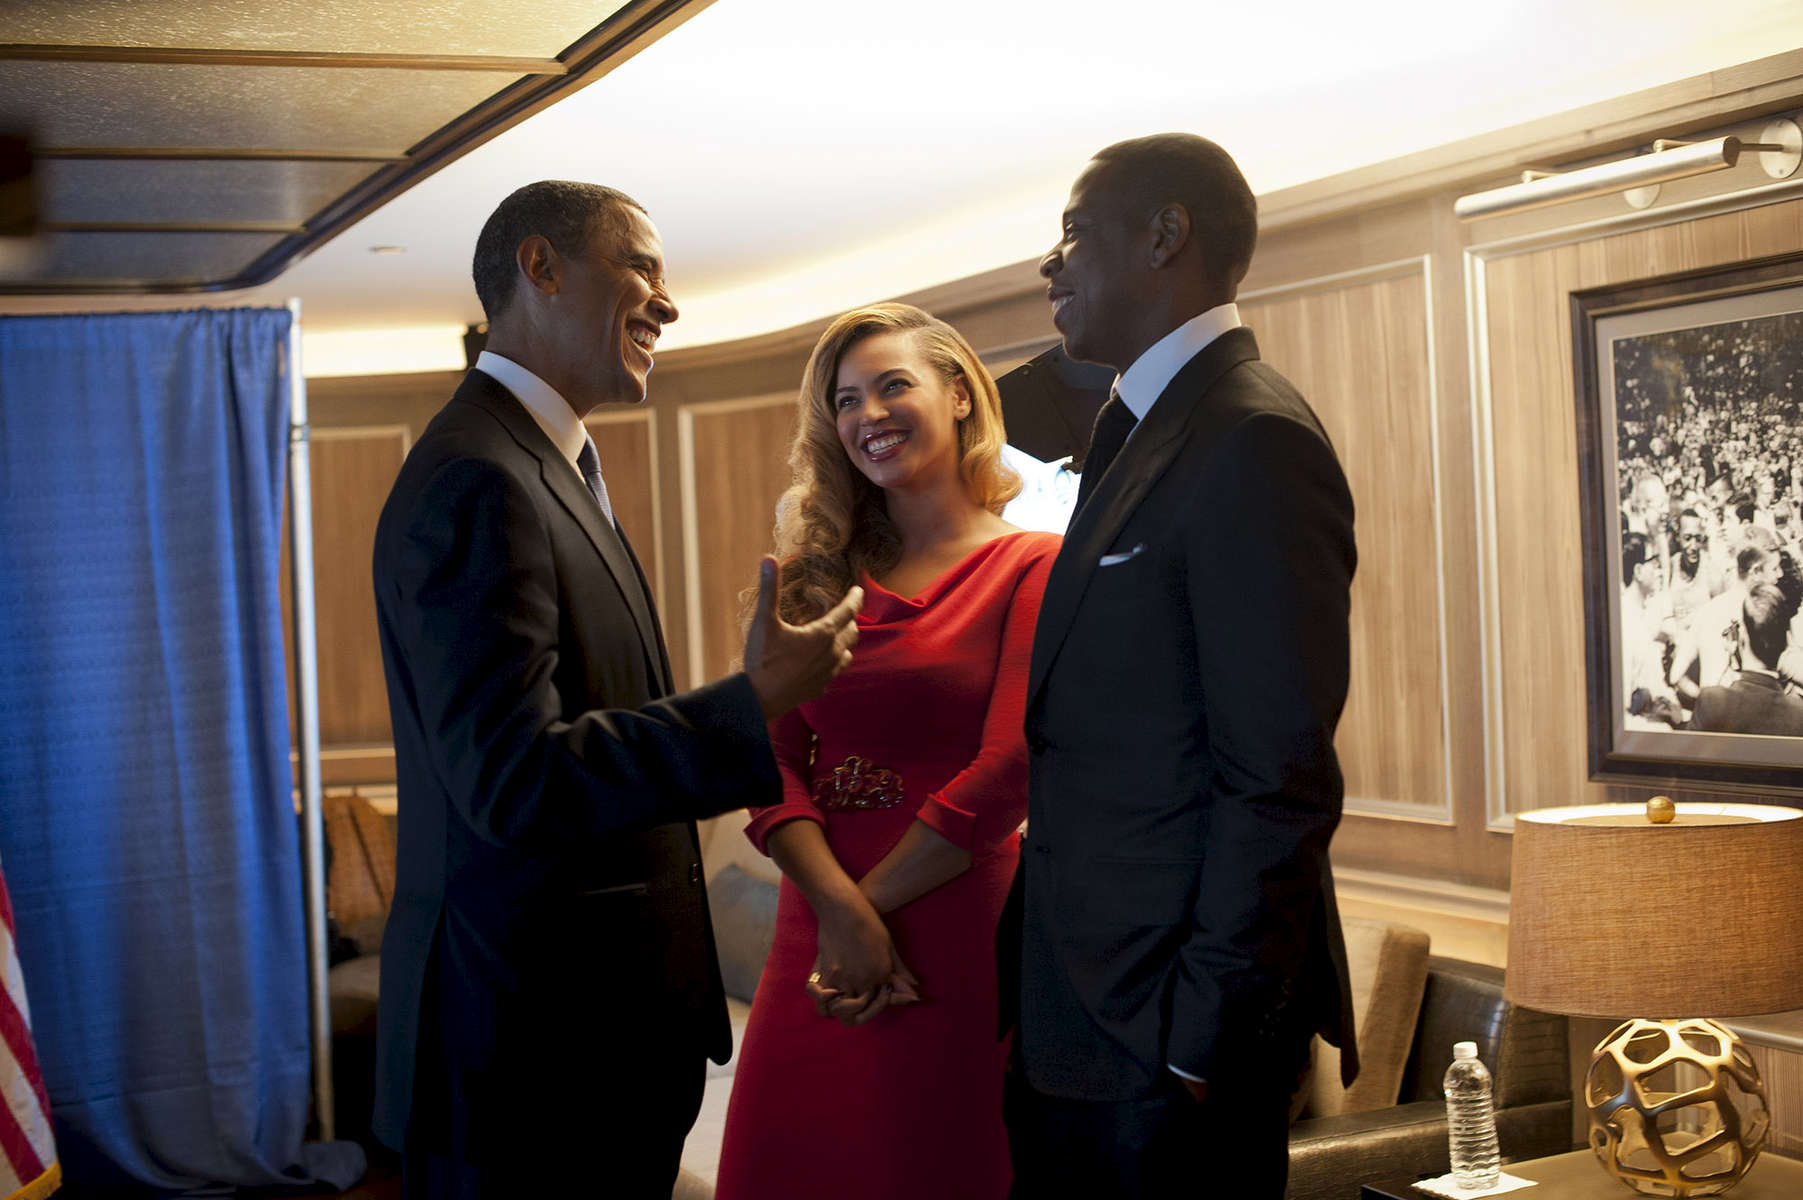 September 18, 2012 - New York, NY: President Barack Obama chats with pop star Beyonce Knowles and rapper Jay-Z backstage at a fundraiser at Jay-Z's 40/40 Club in New York City in September 2012. (Scout Tufankjian for Obama for America/Polaris)